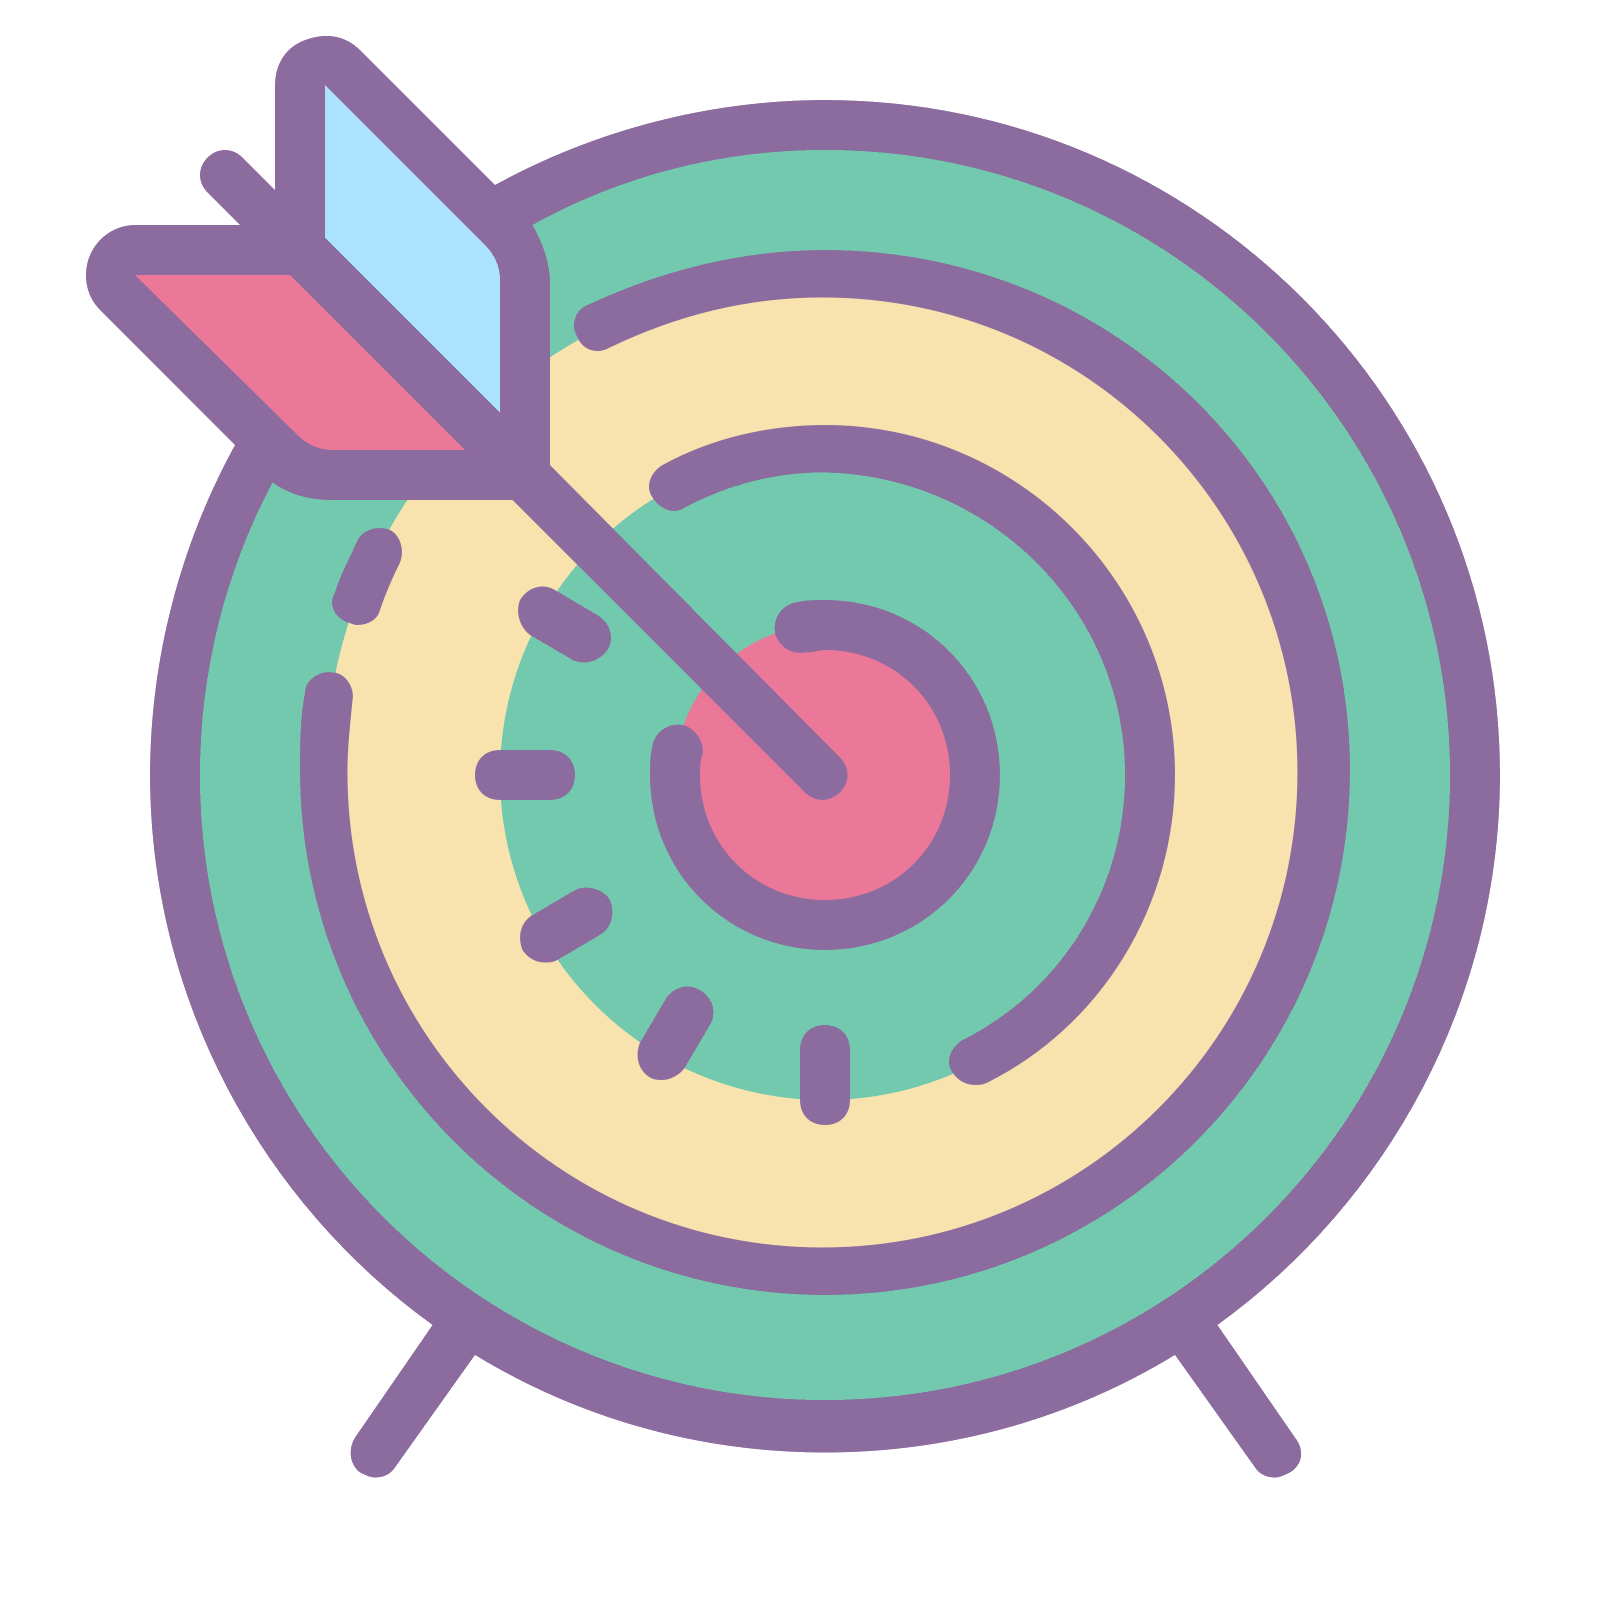 Goal clipart team goal. Icon free download png